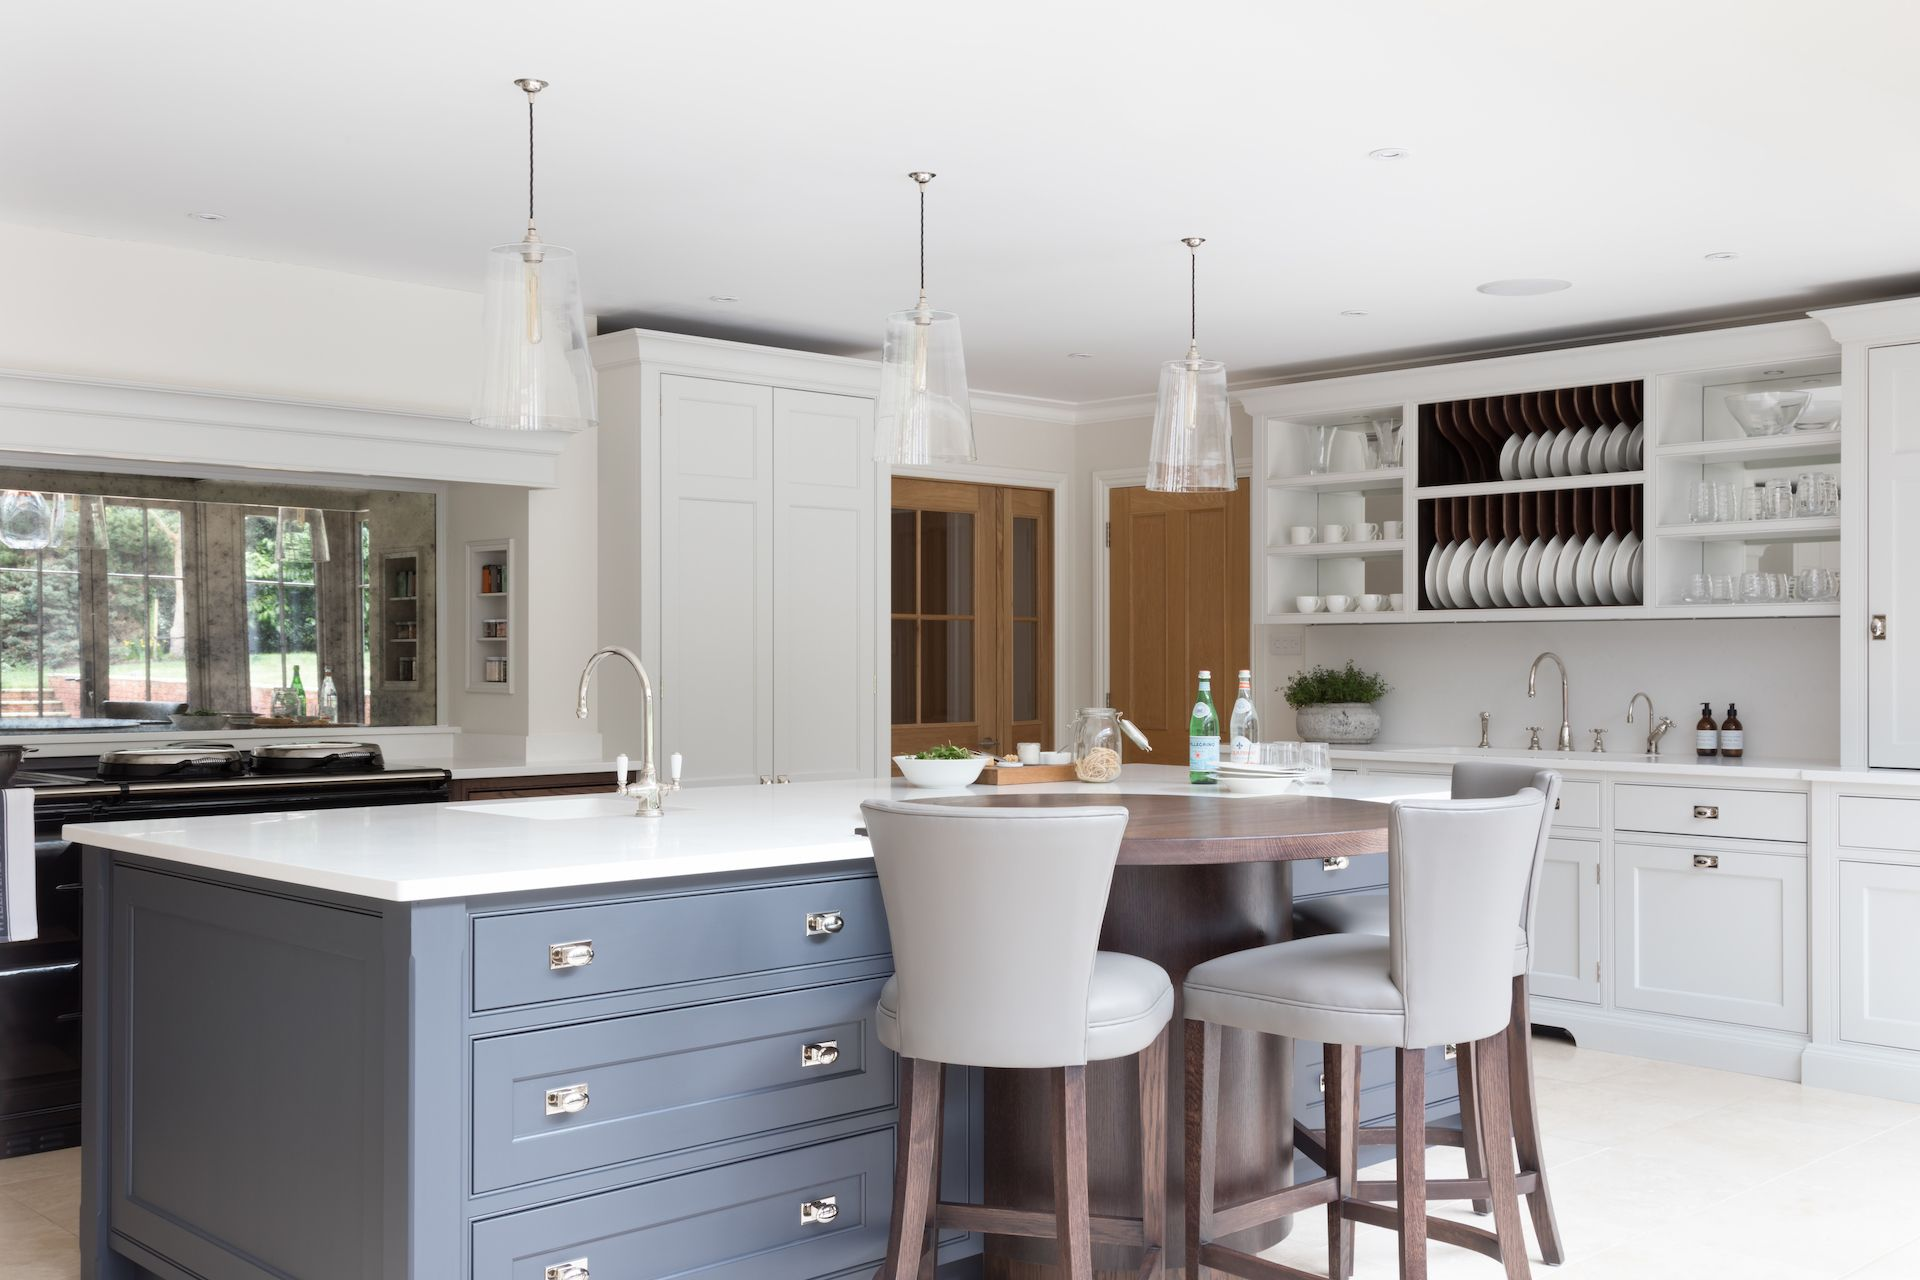 pinewood house tunbridge wells orangery kitchen contemporary rh pinterest com